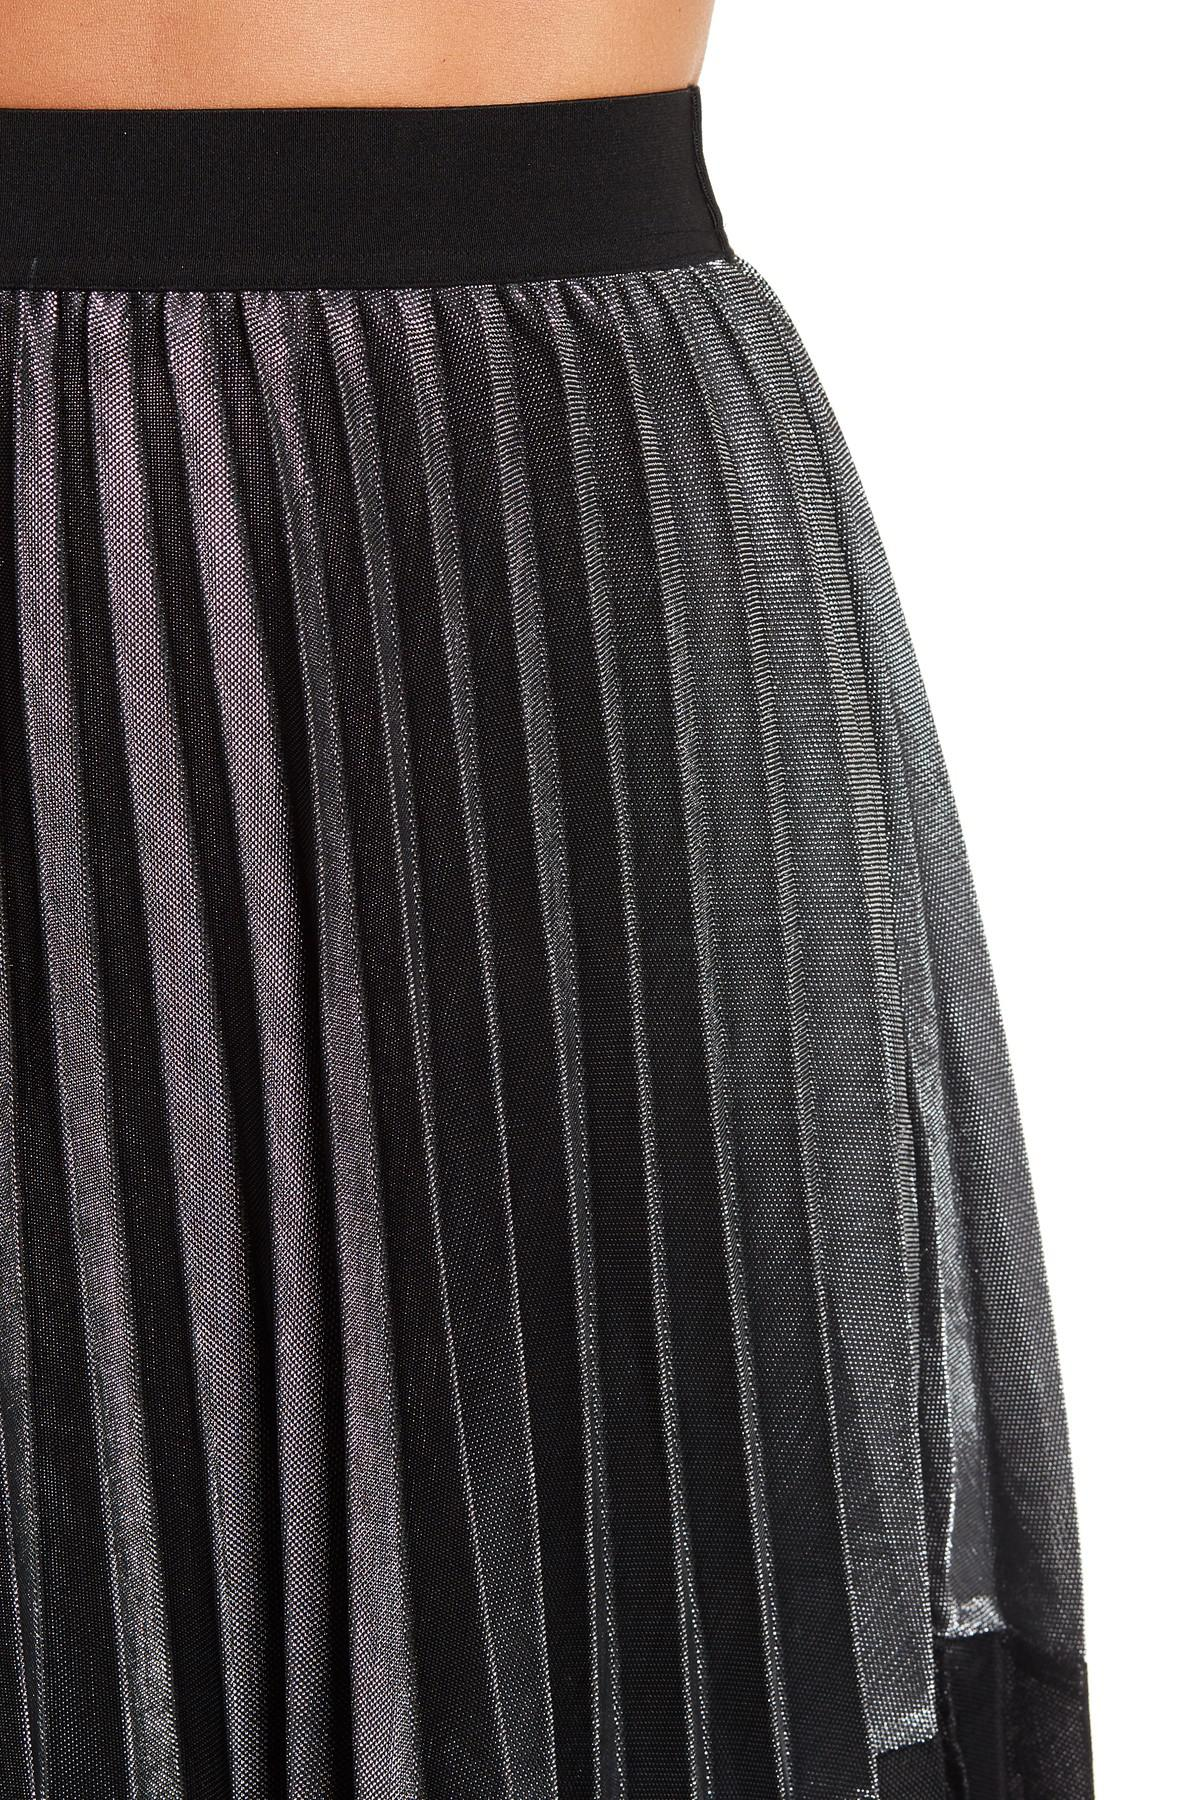 e9c9be4d08 Angie Two-tone Metallic Pleated Midi Skirt - Lyst